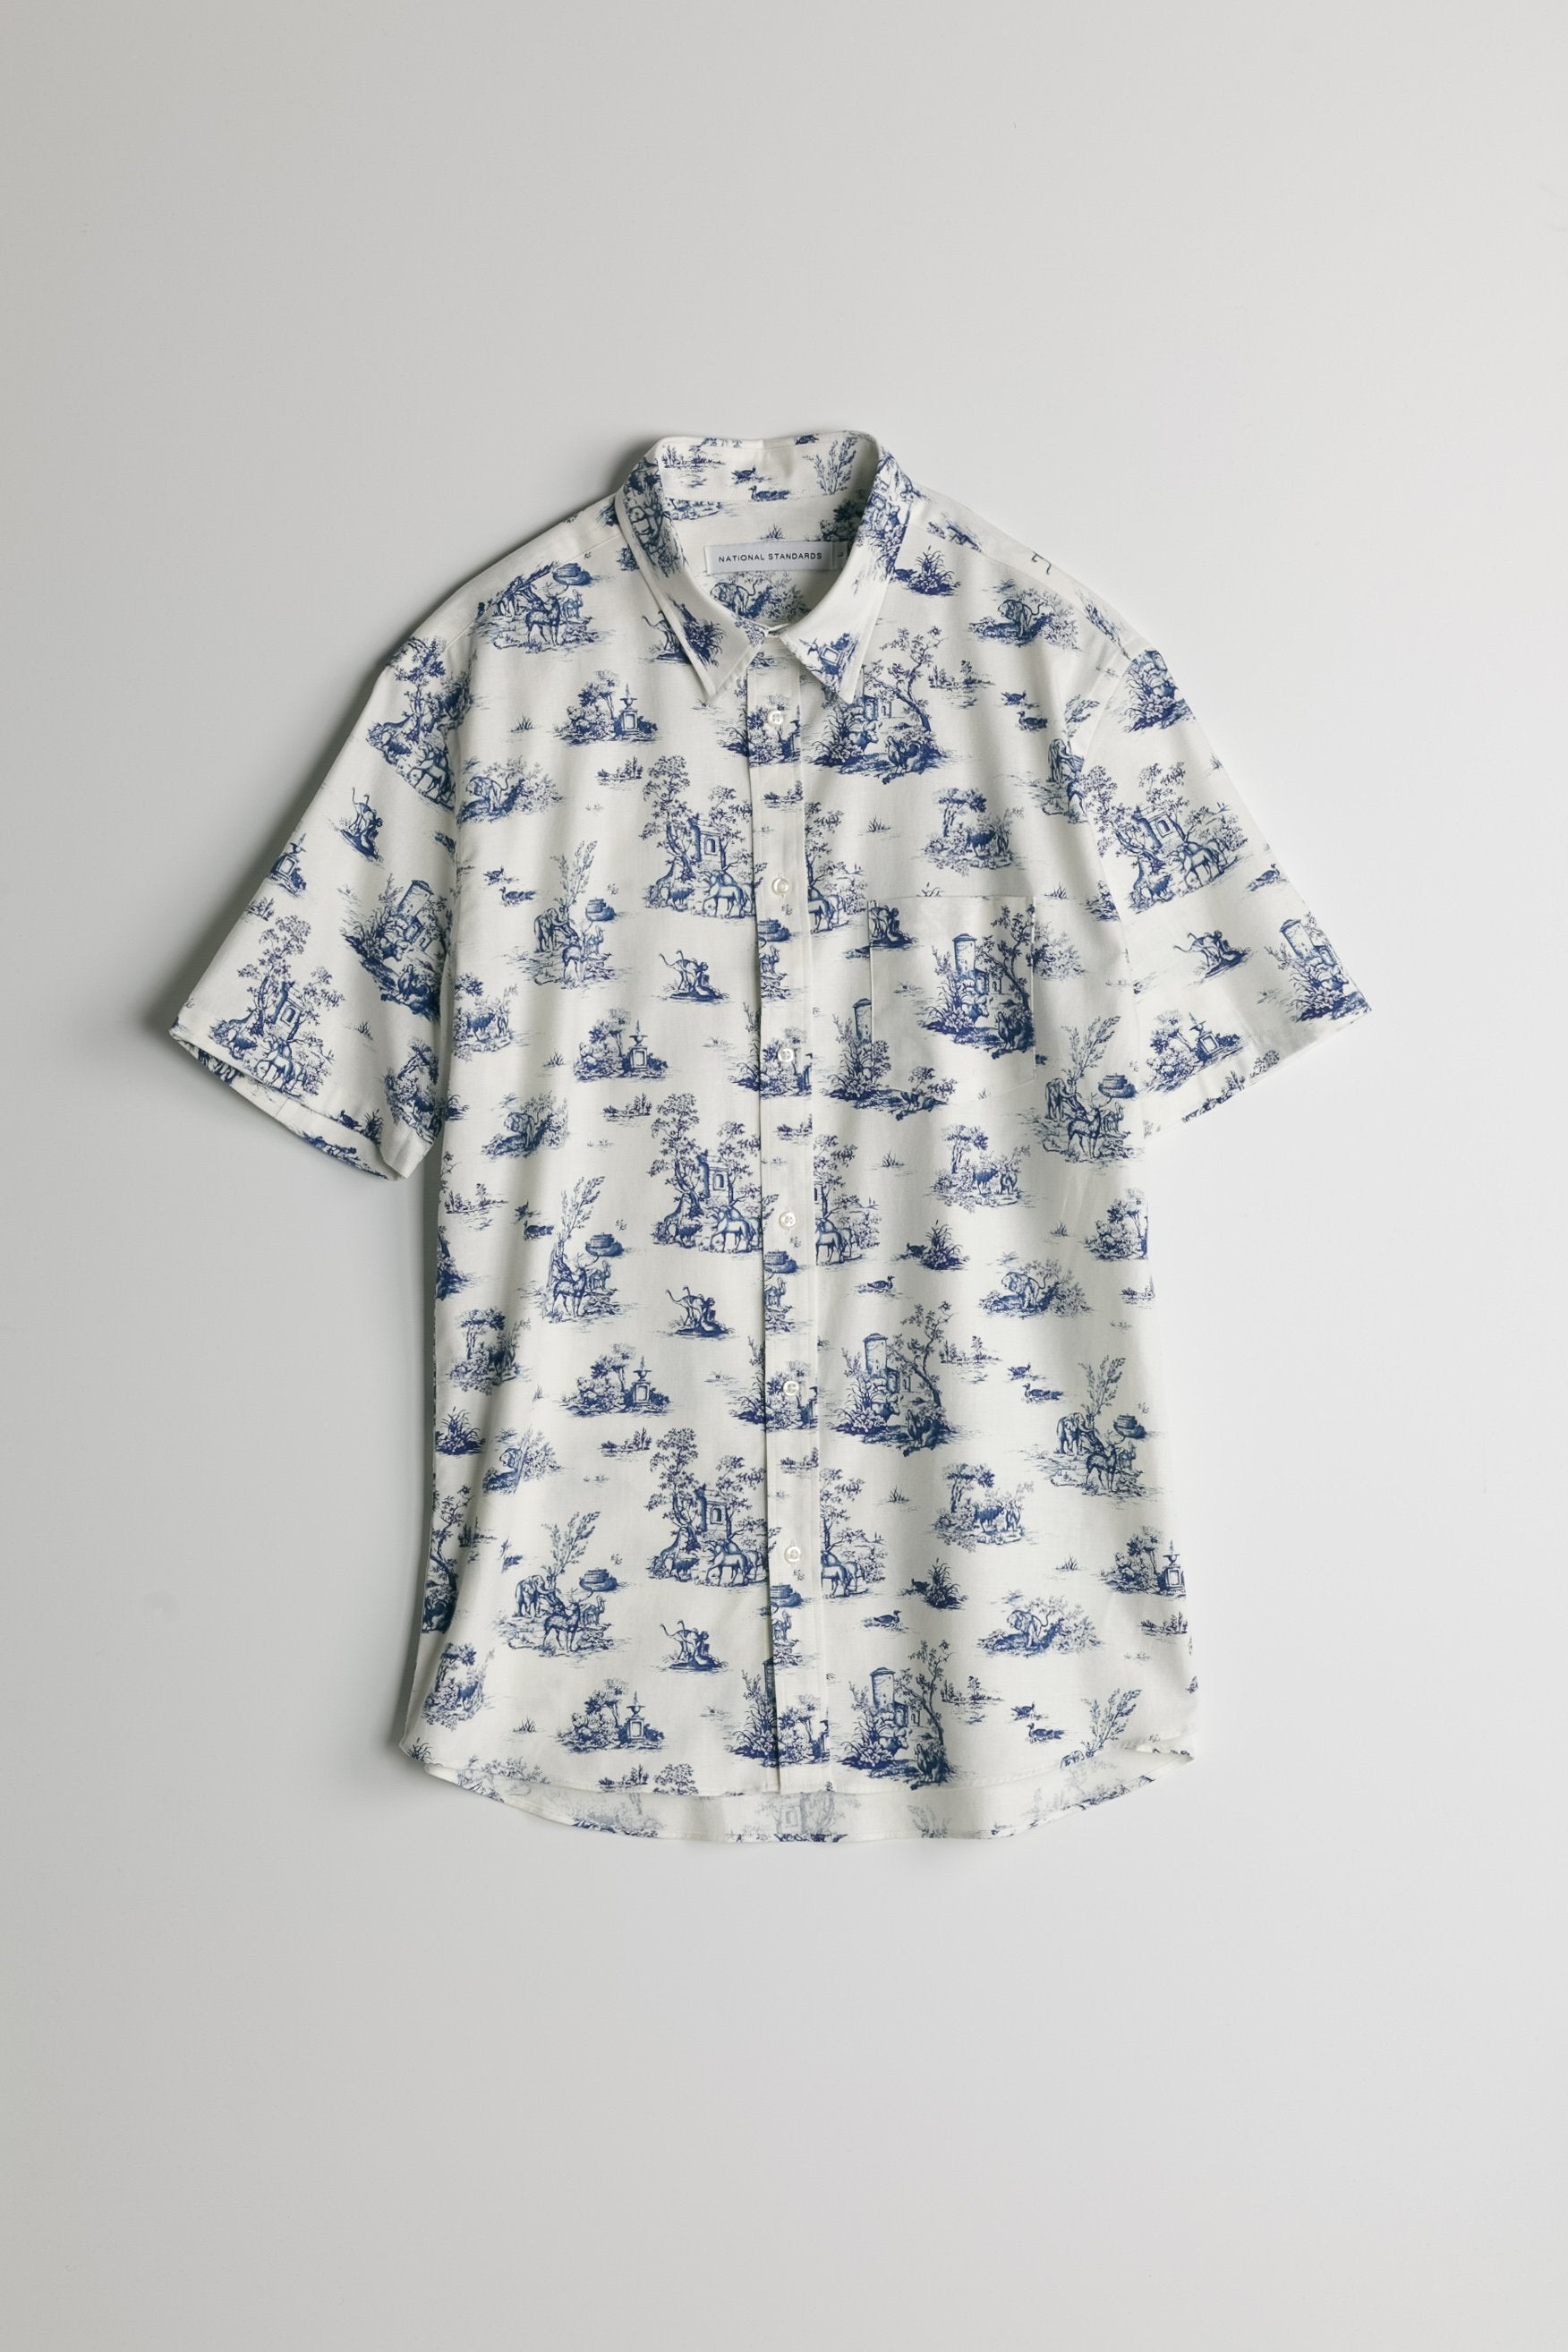 Japanese Safari Print in White and Blue 07